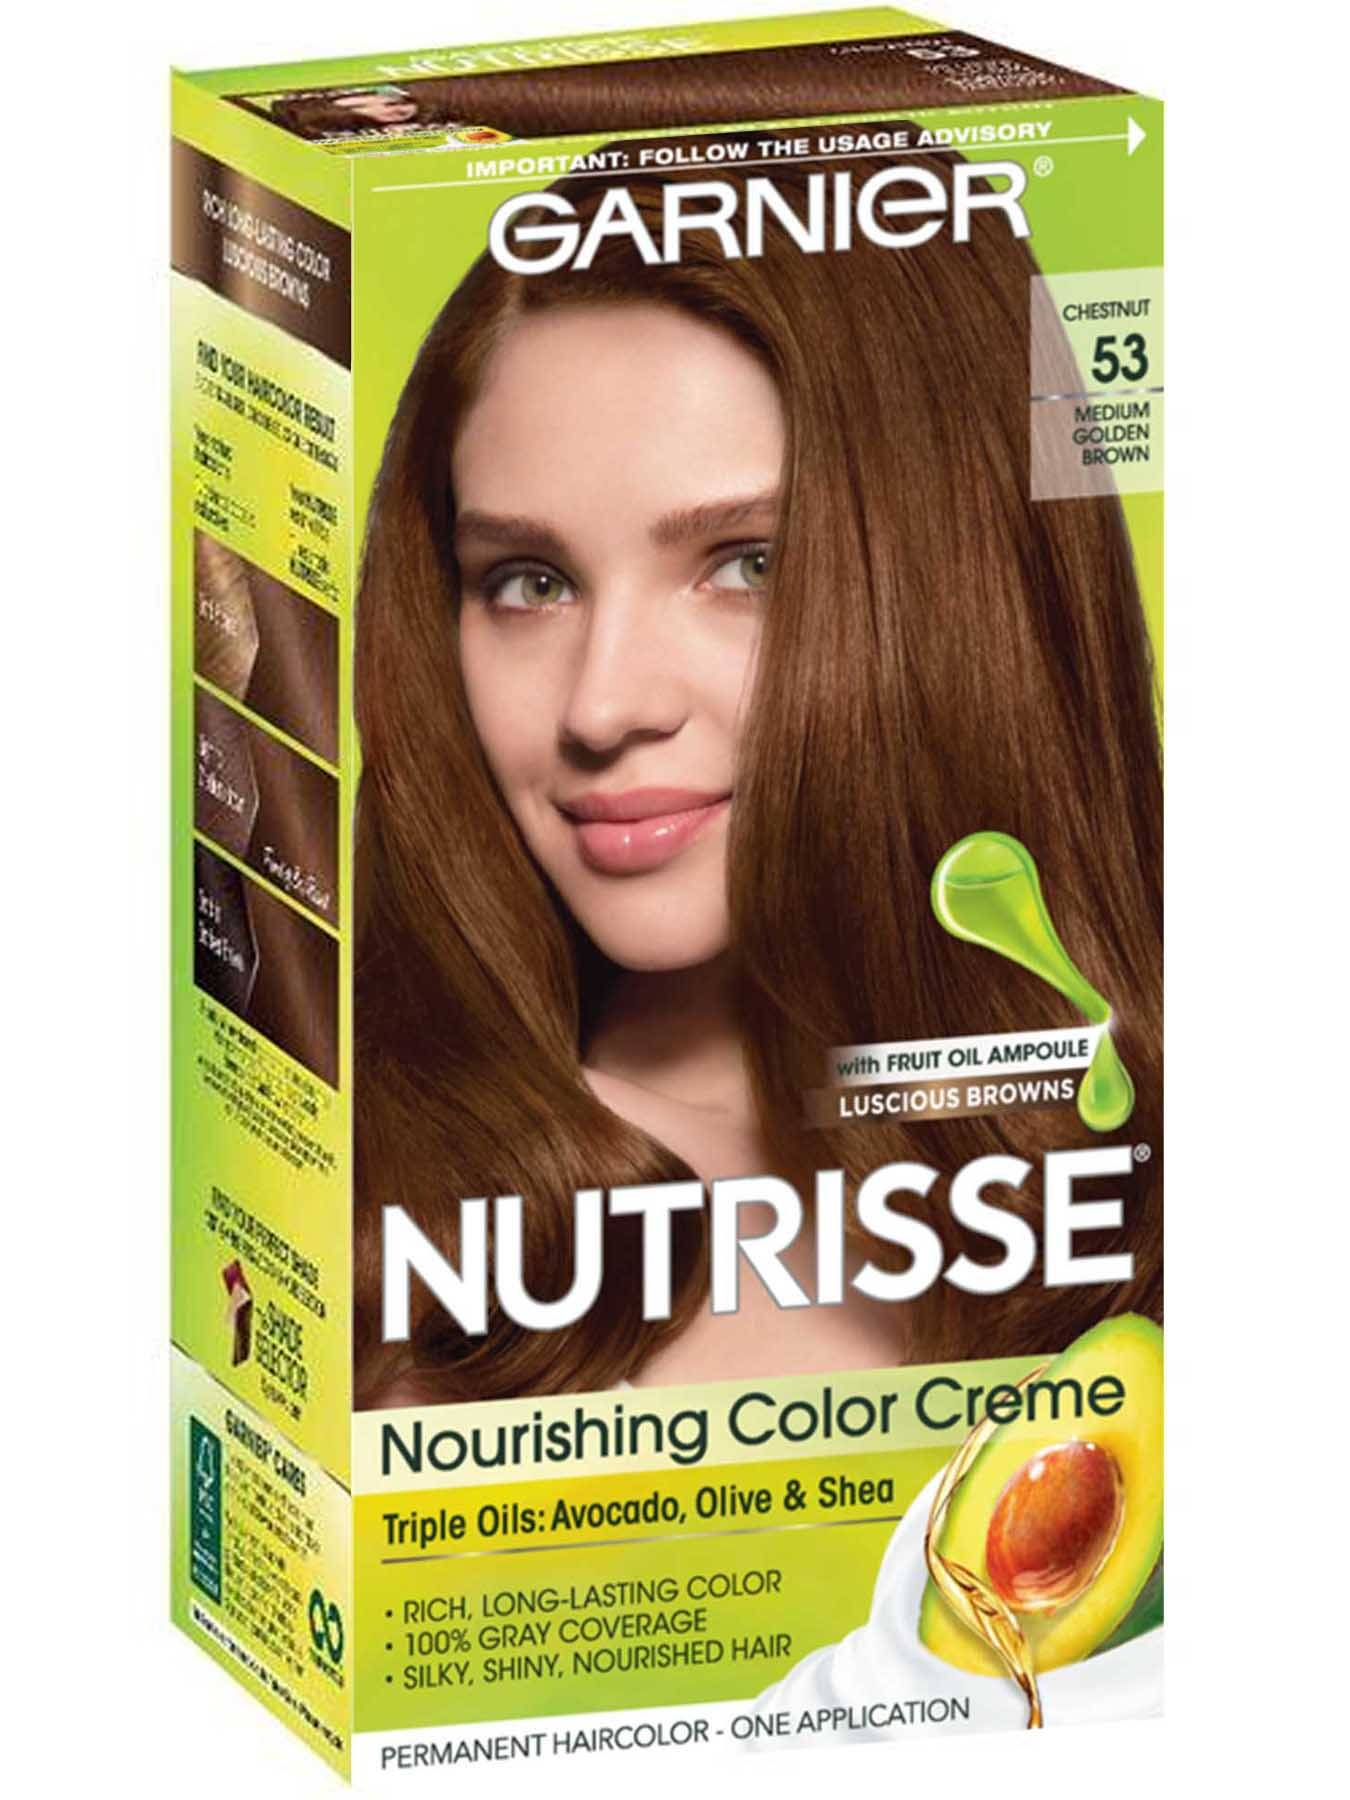 Medium Brown Hair Color Nutrisse Color Creme